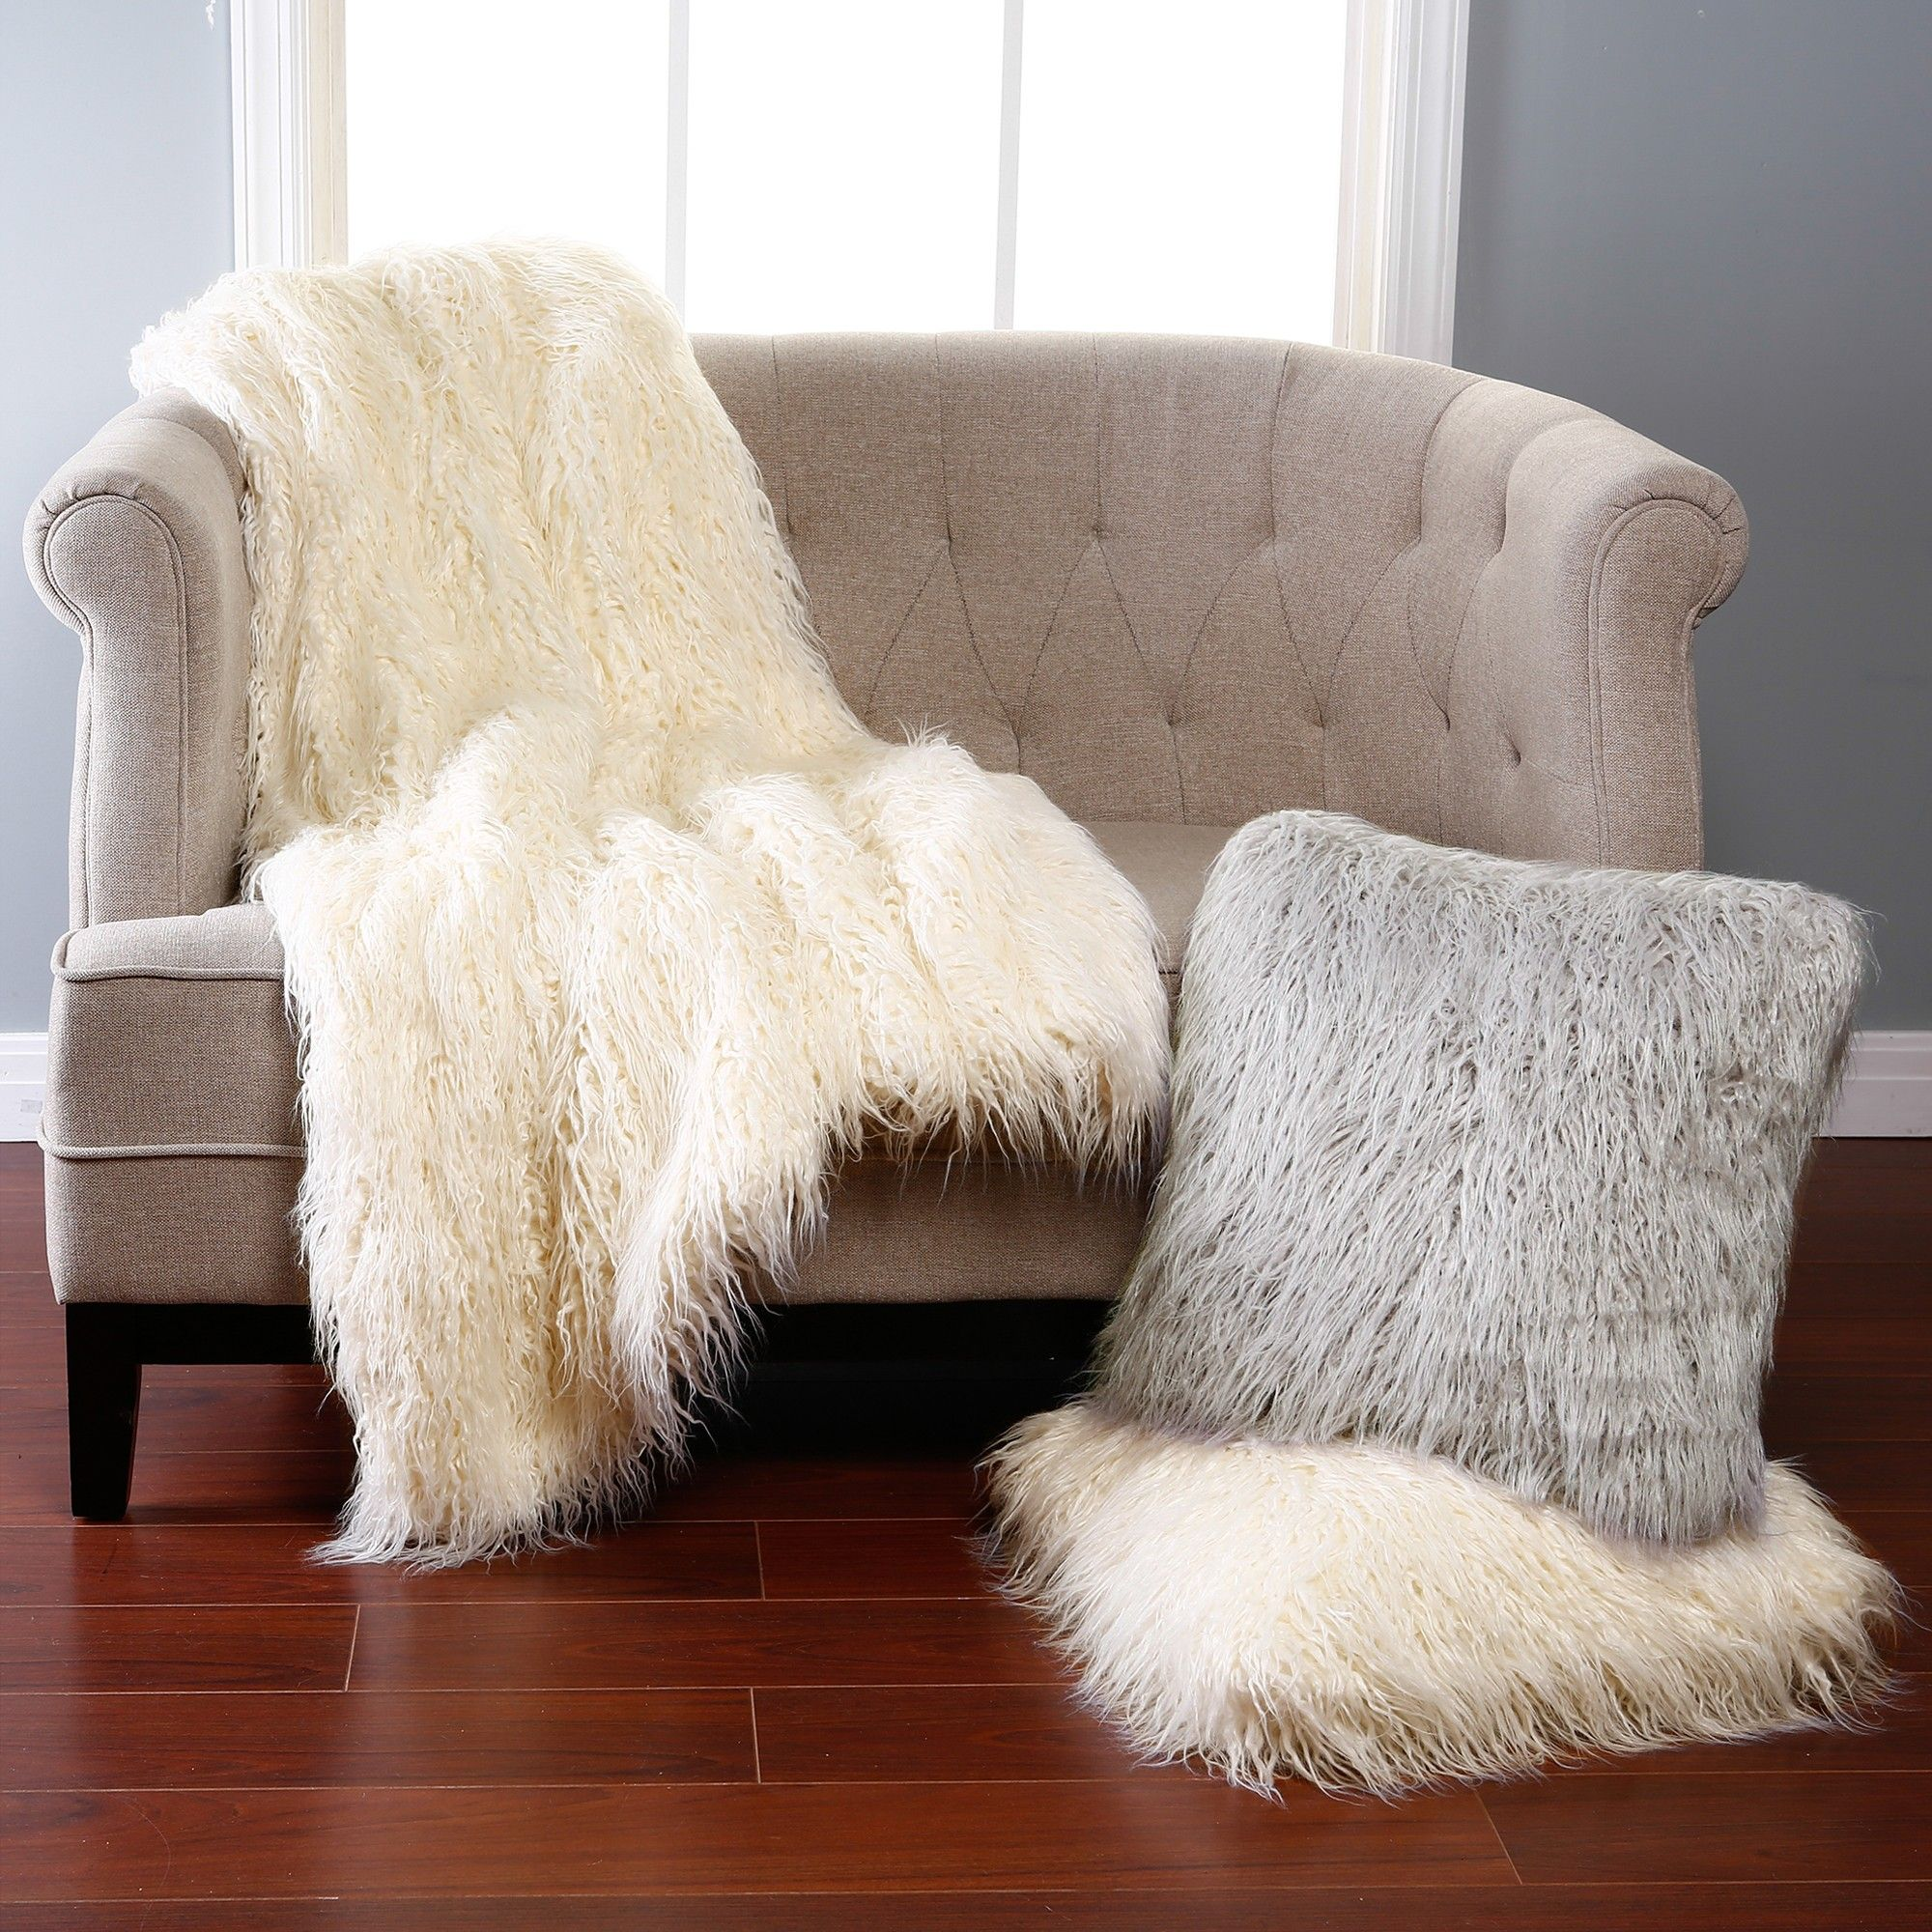 Comfy Faux Sheepskin Rug For Floor Decor Ideas Faux